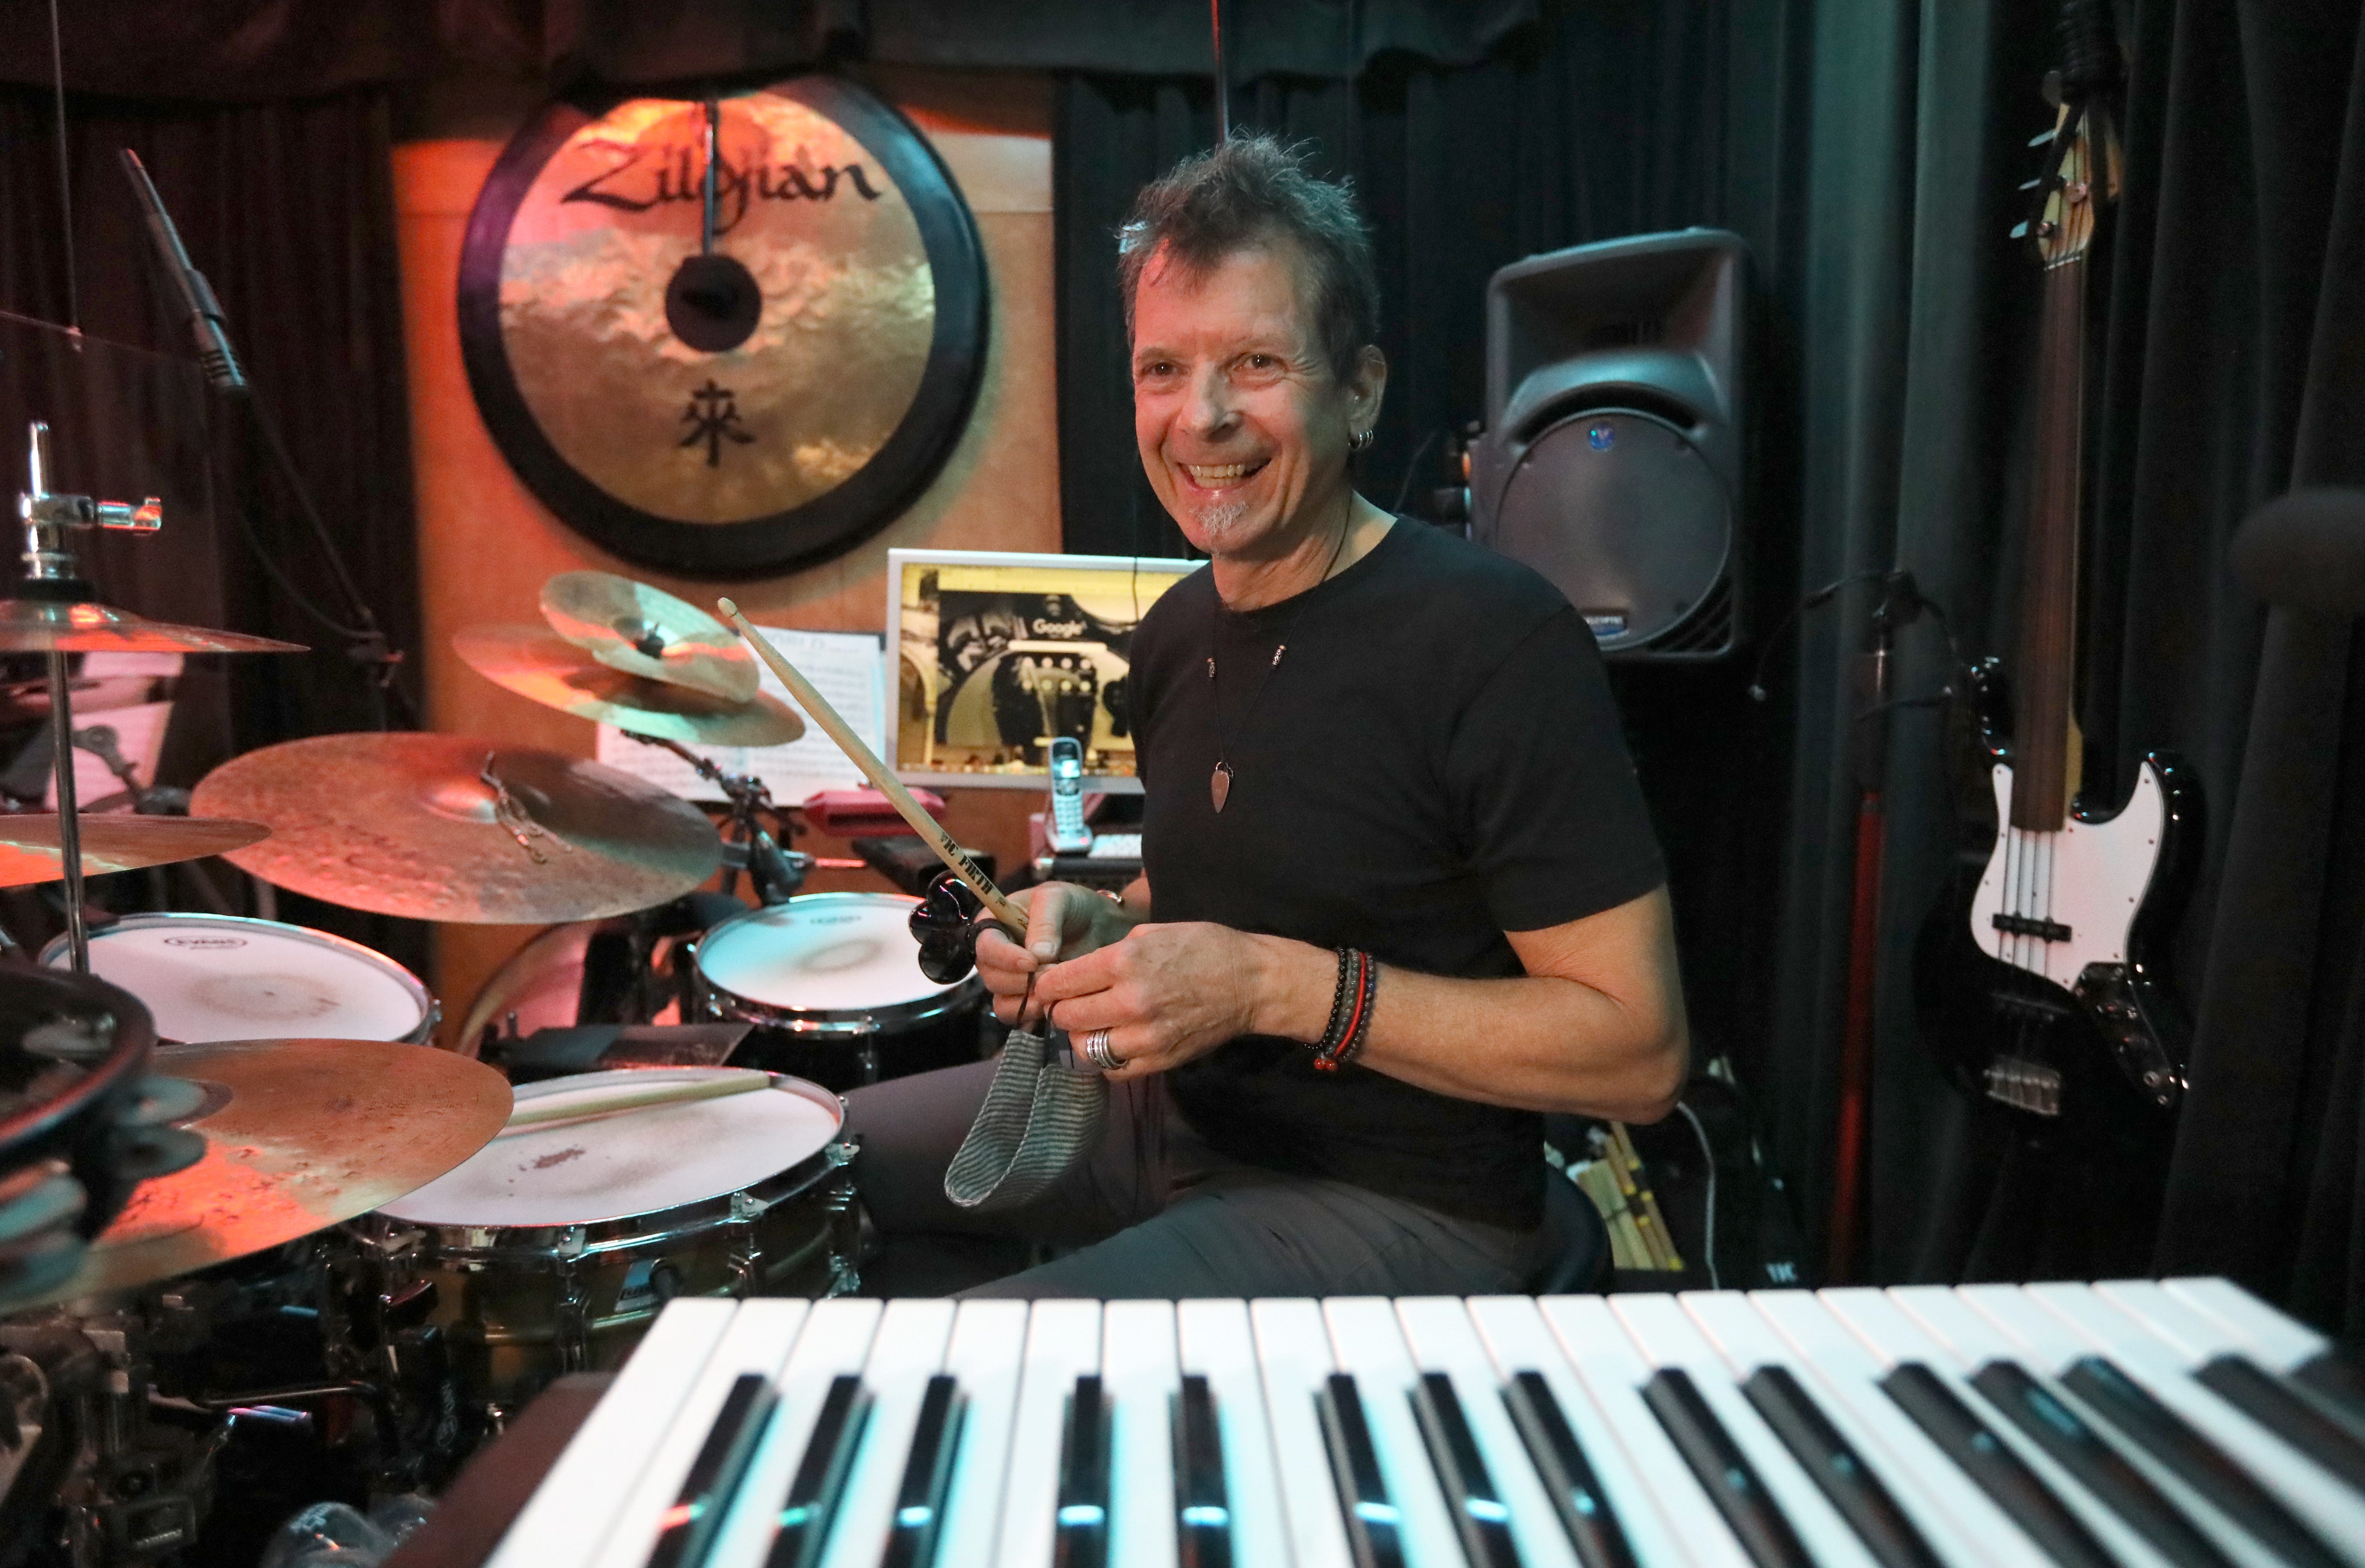 Ed Bettinelli at his Art of Drumming studio in Yonkers.